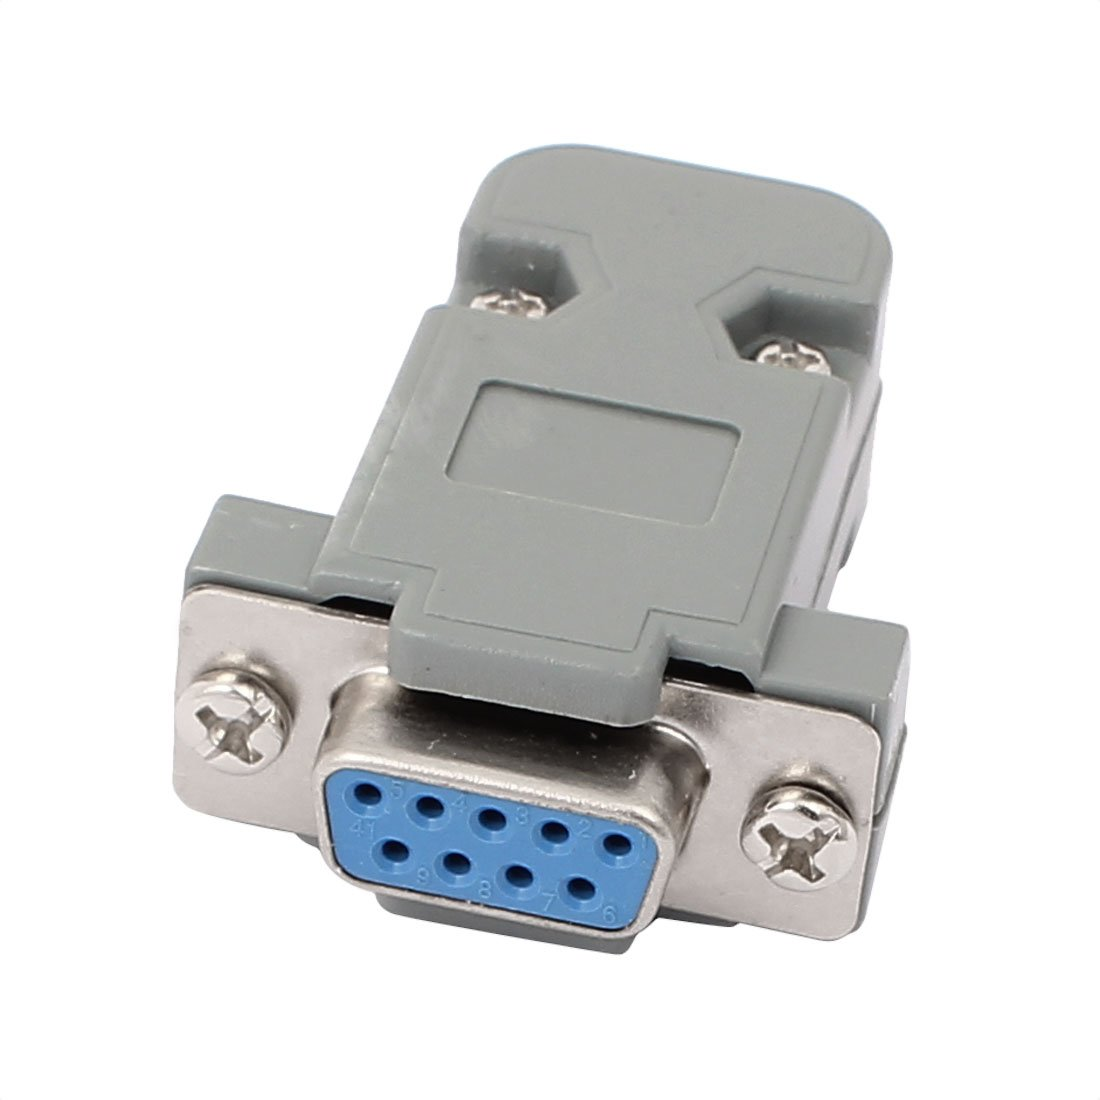 hight resolution of get quotations uxcell db9 9 pins 2 rows female converter connector adapter w plastic housing assembly shell